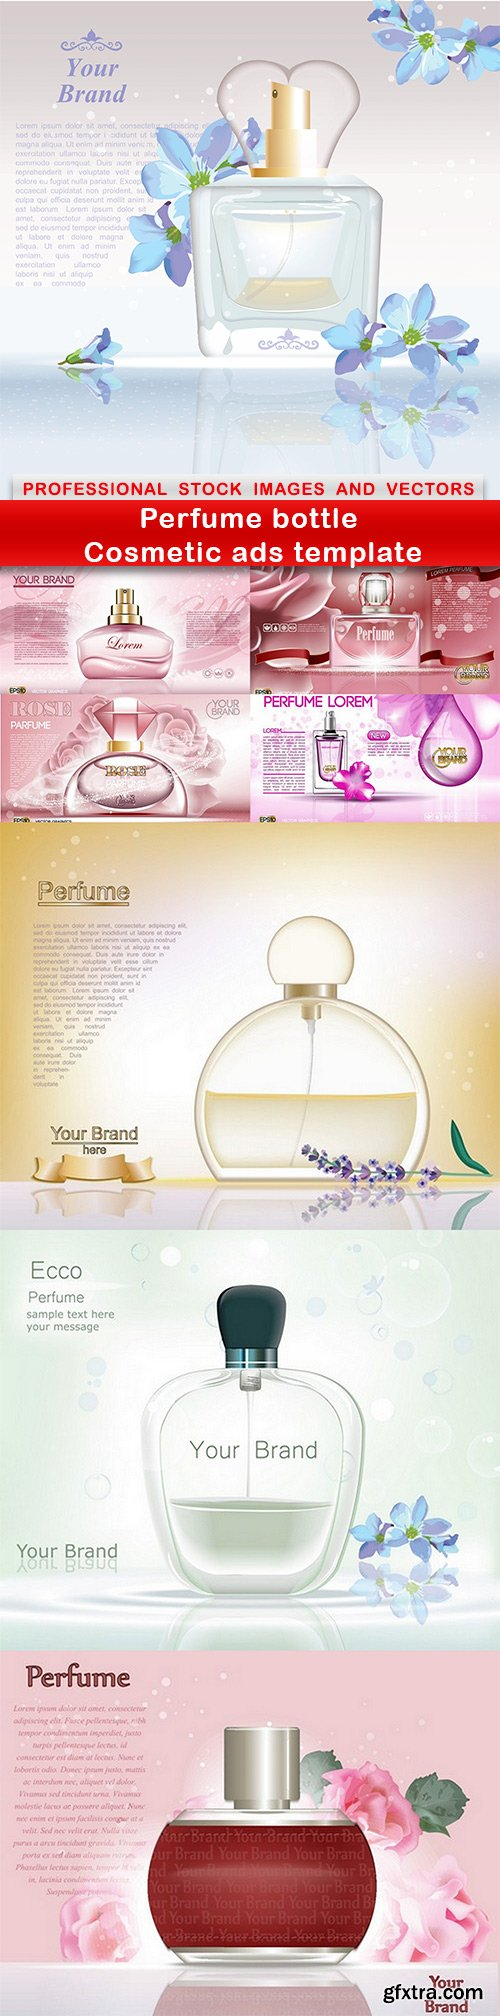 Perfume bottle Cosmetic ads template - 8 EPS